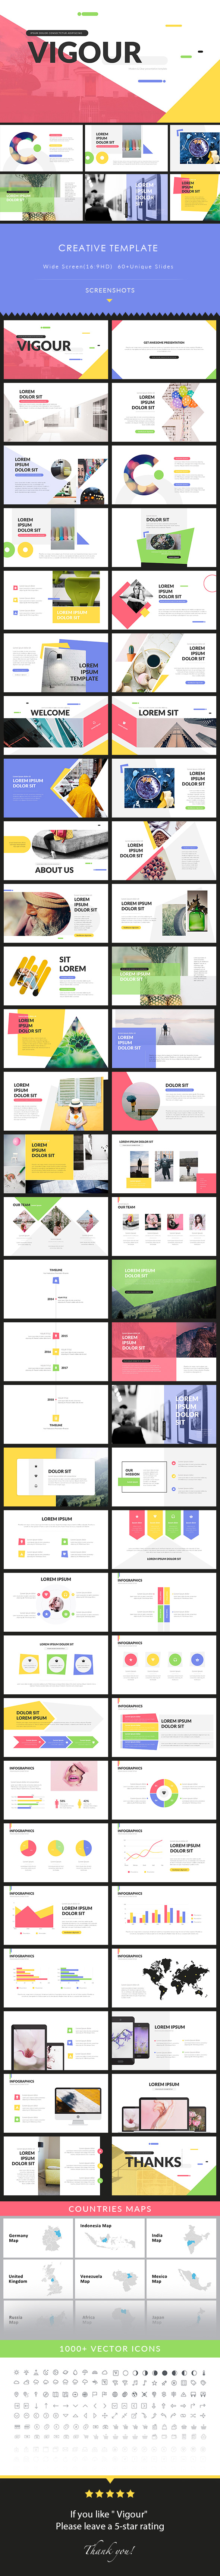 Vigour - PowerPoint Presentation Template - Creative PowerPoint Templates